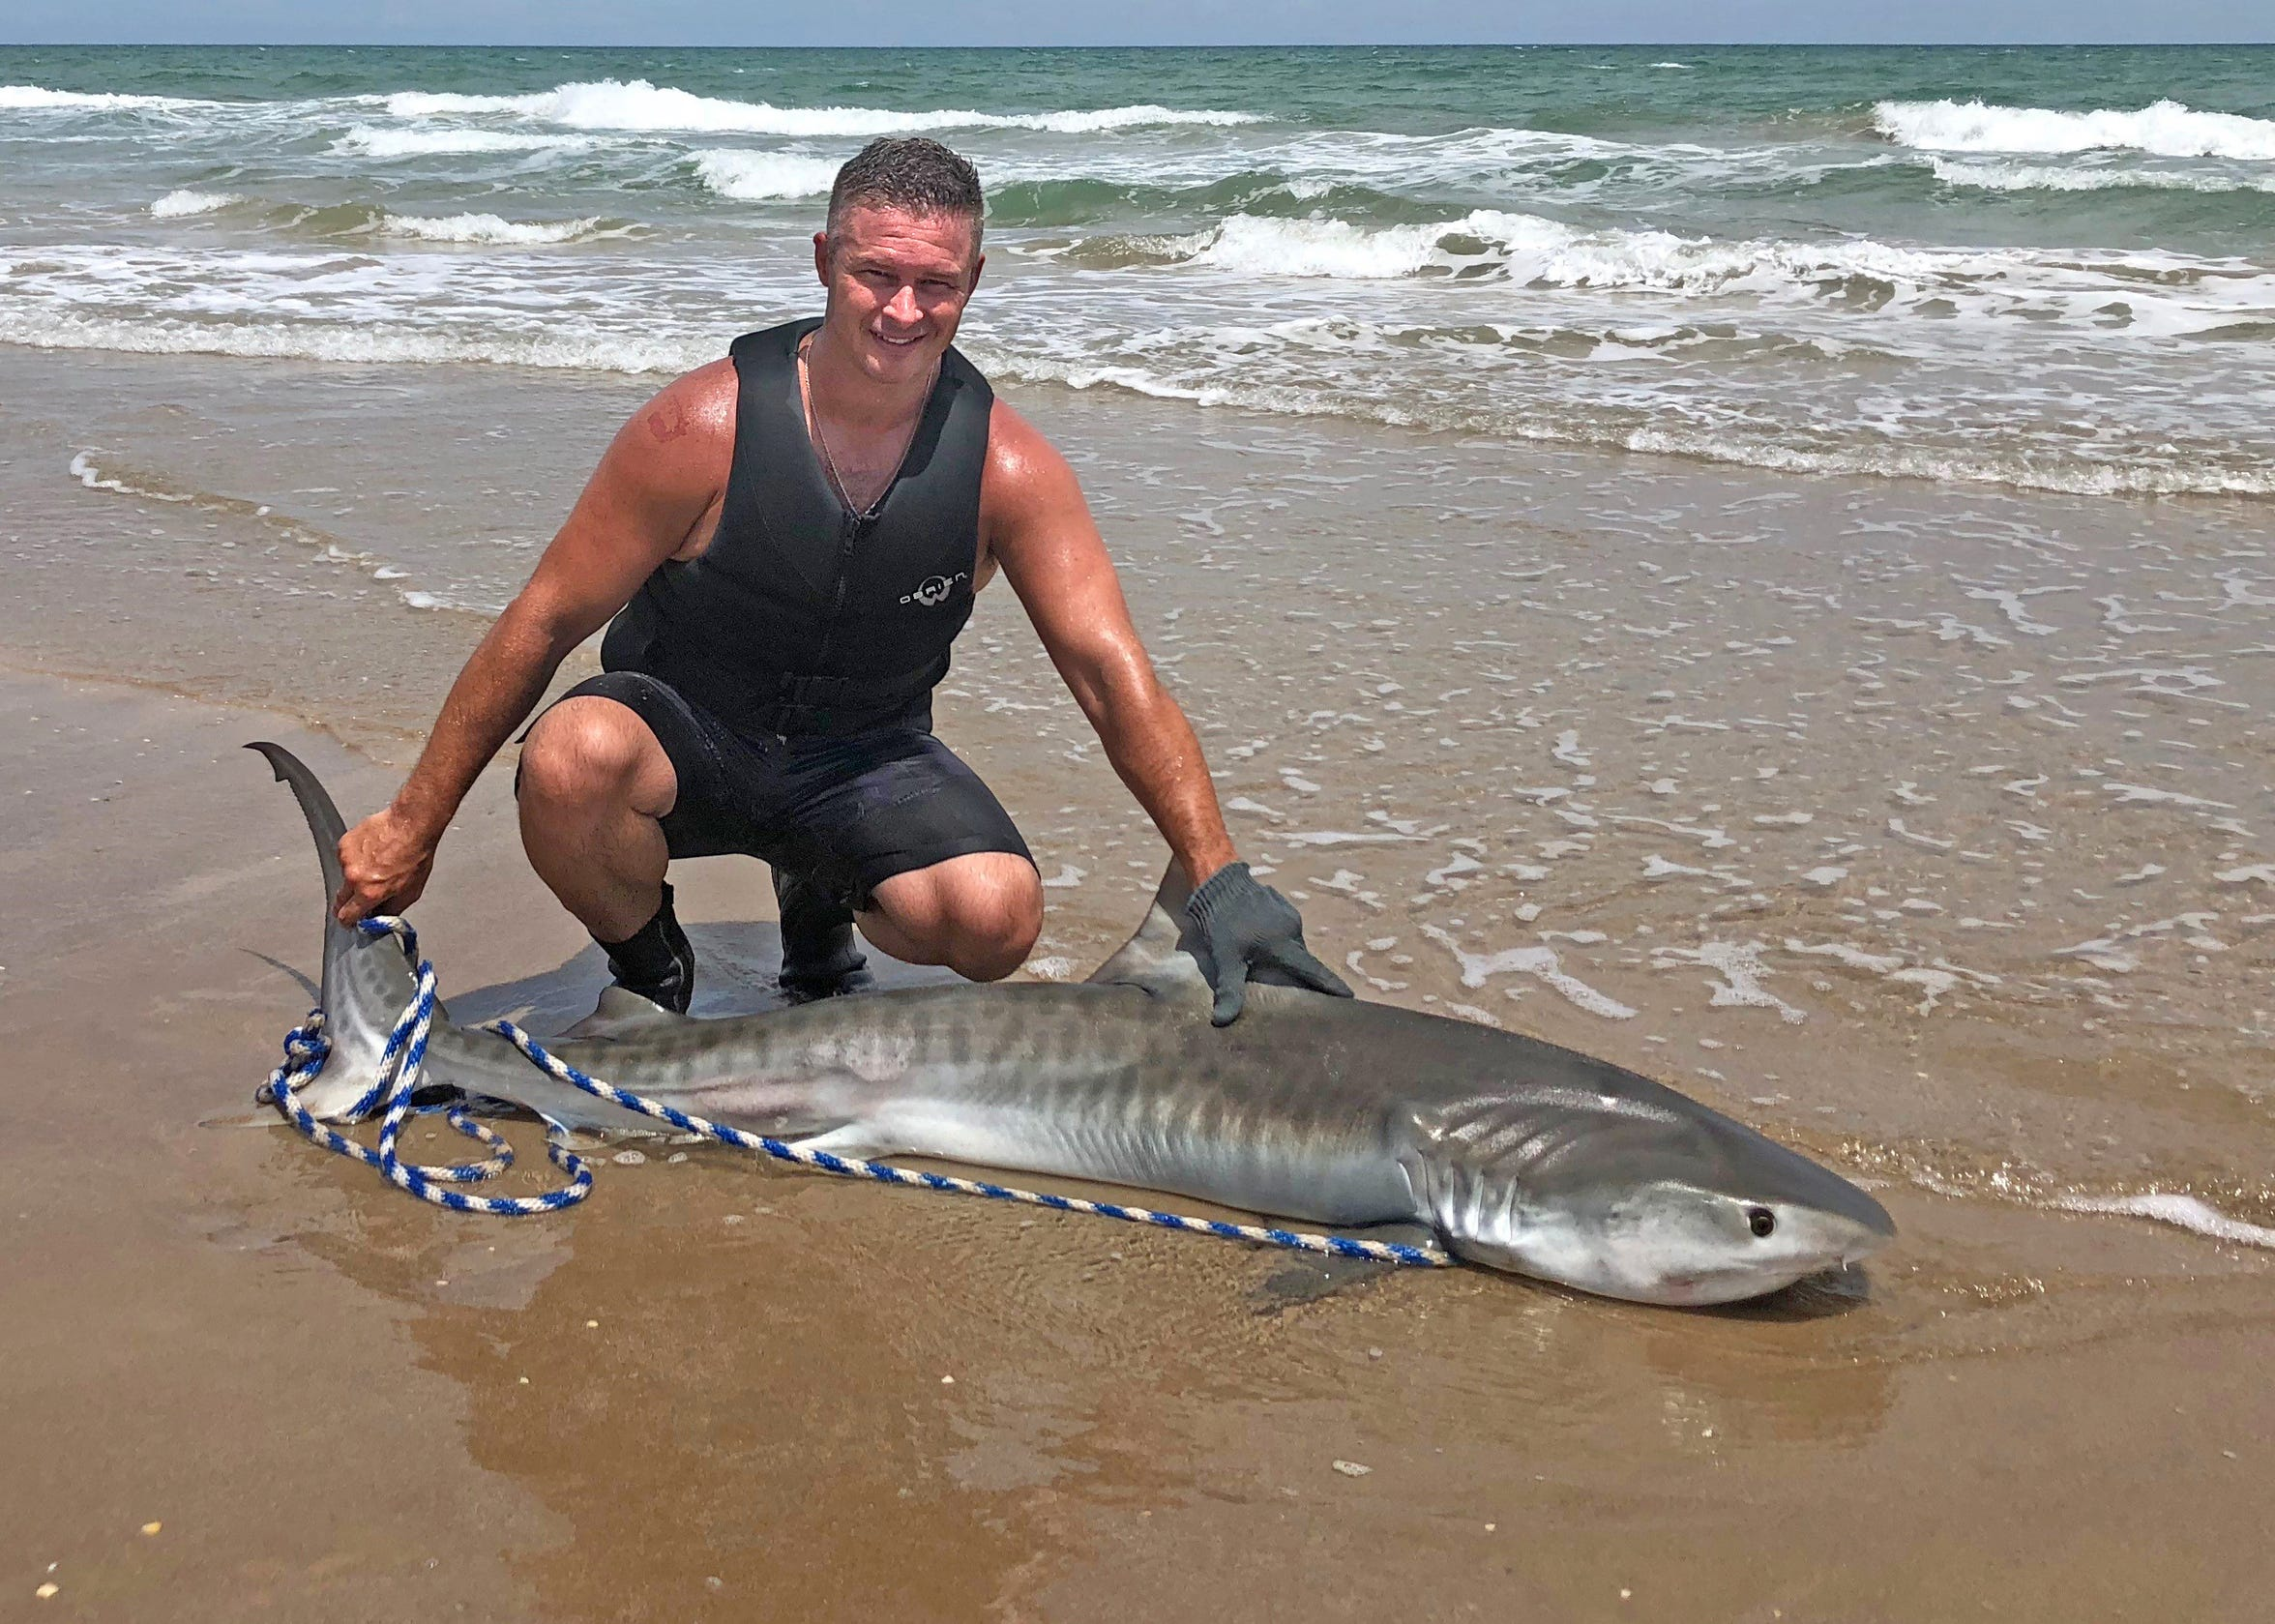 The first tiger shark Josh Rieder caught measured 7-foot. It was released.